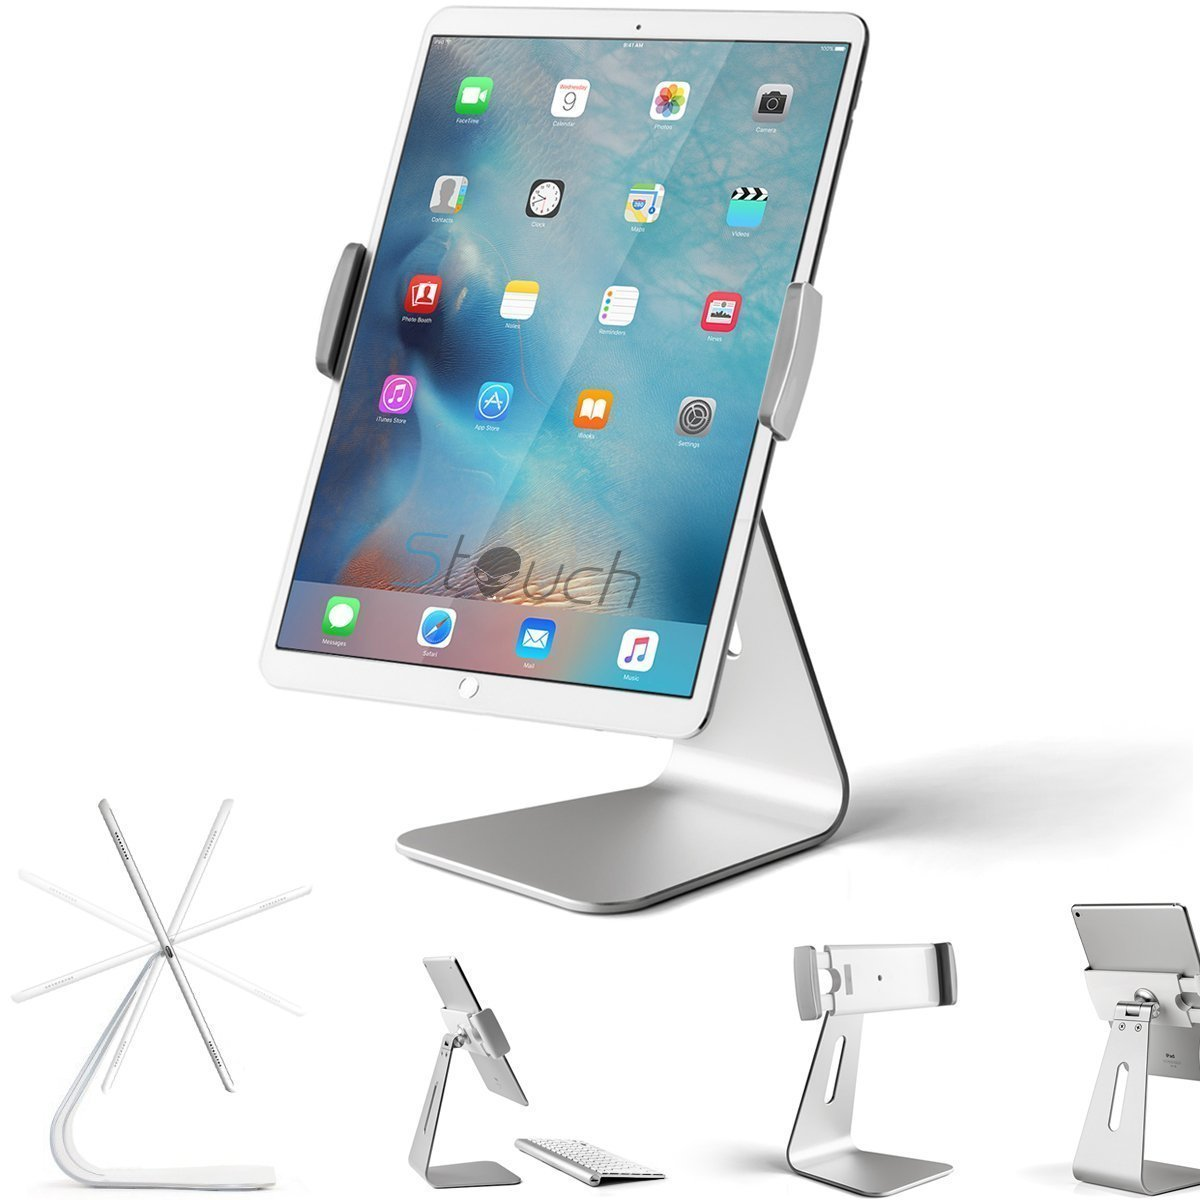 Stouch iPad Pro Tablet Holder Stand, 360° Rotatable Aluminum Alloy Desktop Holder Tablet Stand Compatible for Samsung Galaxy Tab Pro S iPad Pro10.5 9.7'' 12.9'' iPad Air Surface Pro 4 Kiosk POS Stand by Stouchi